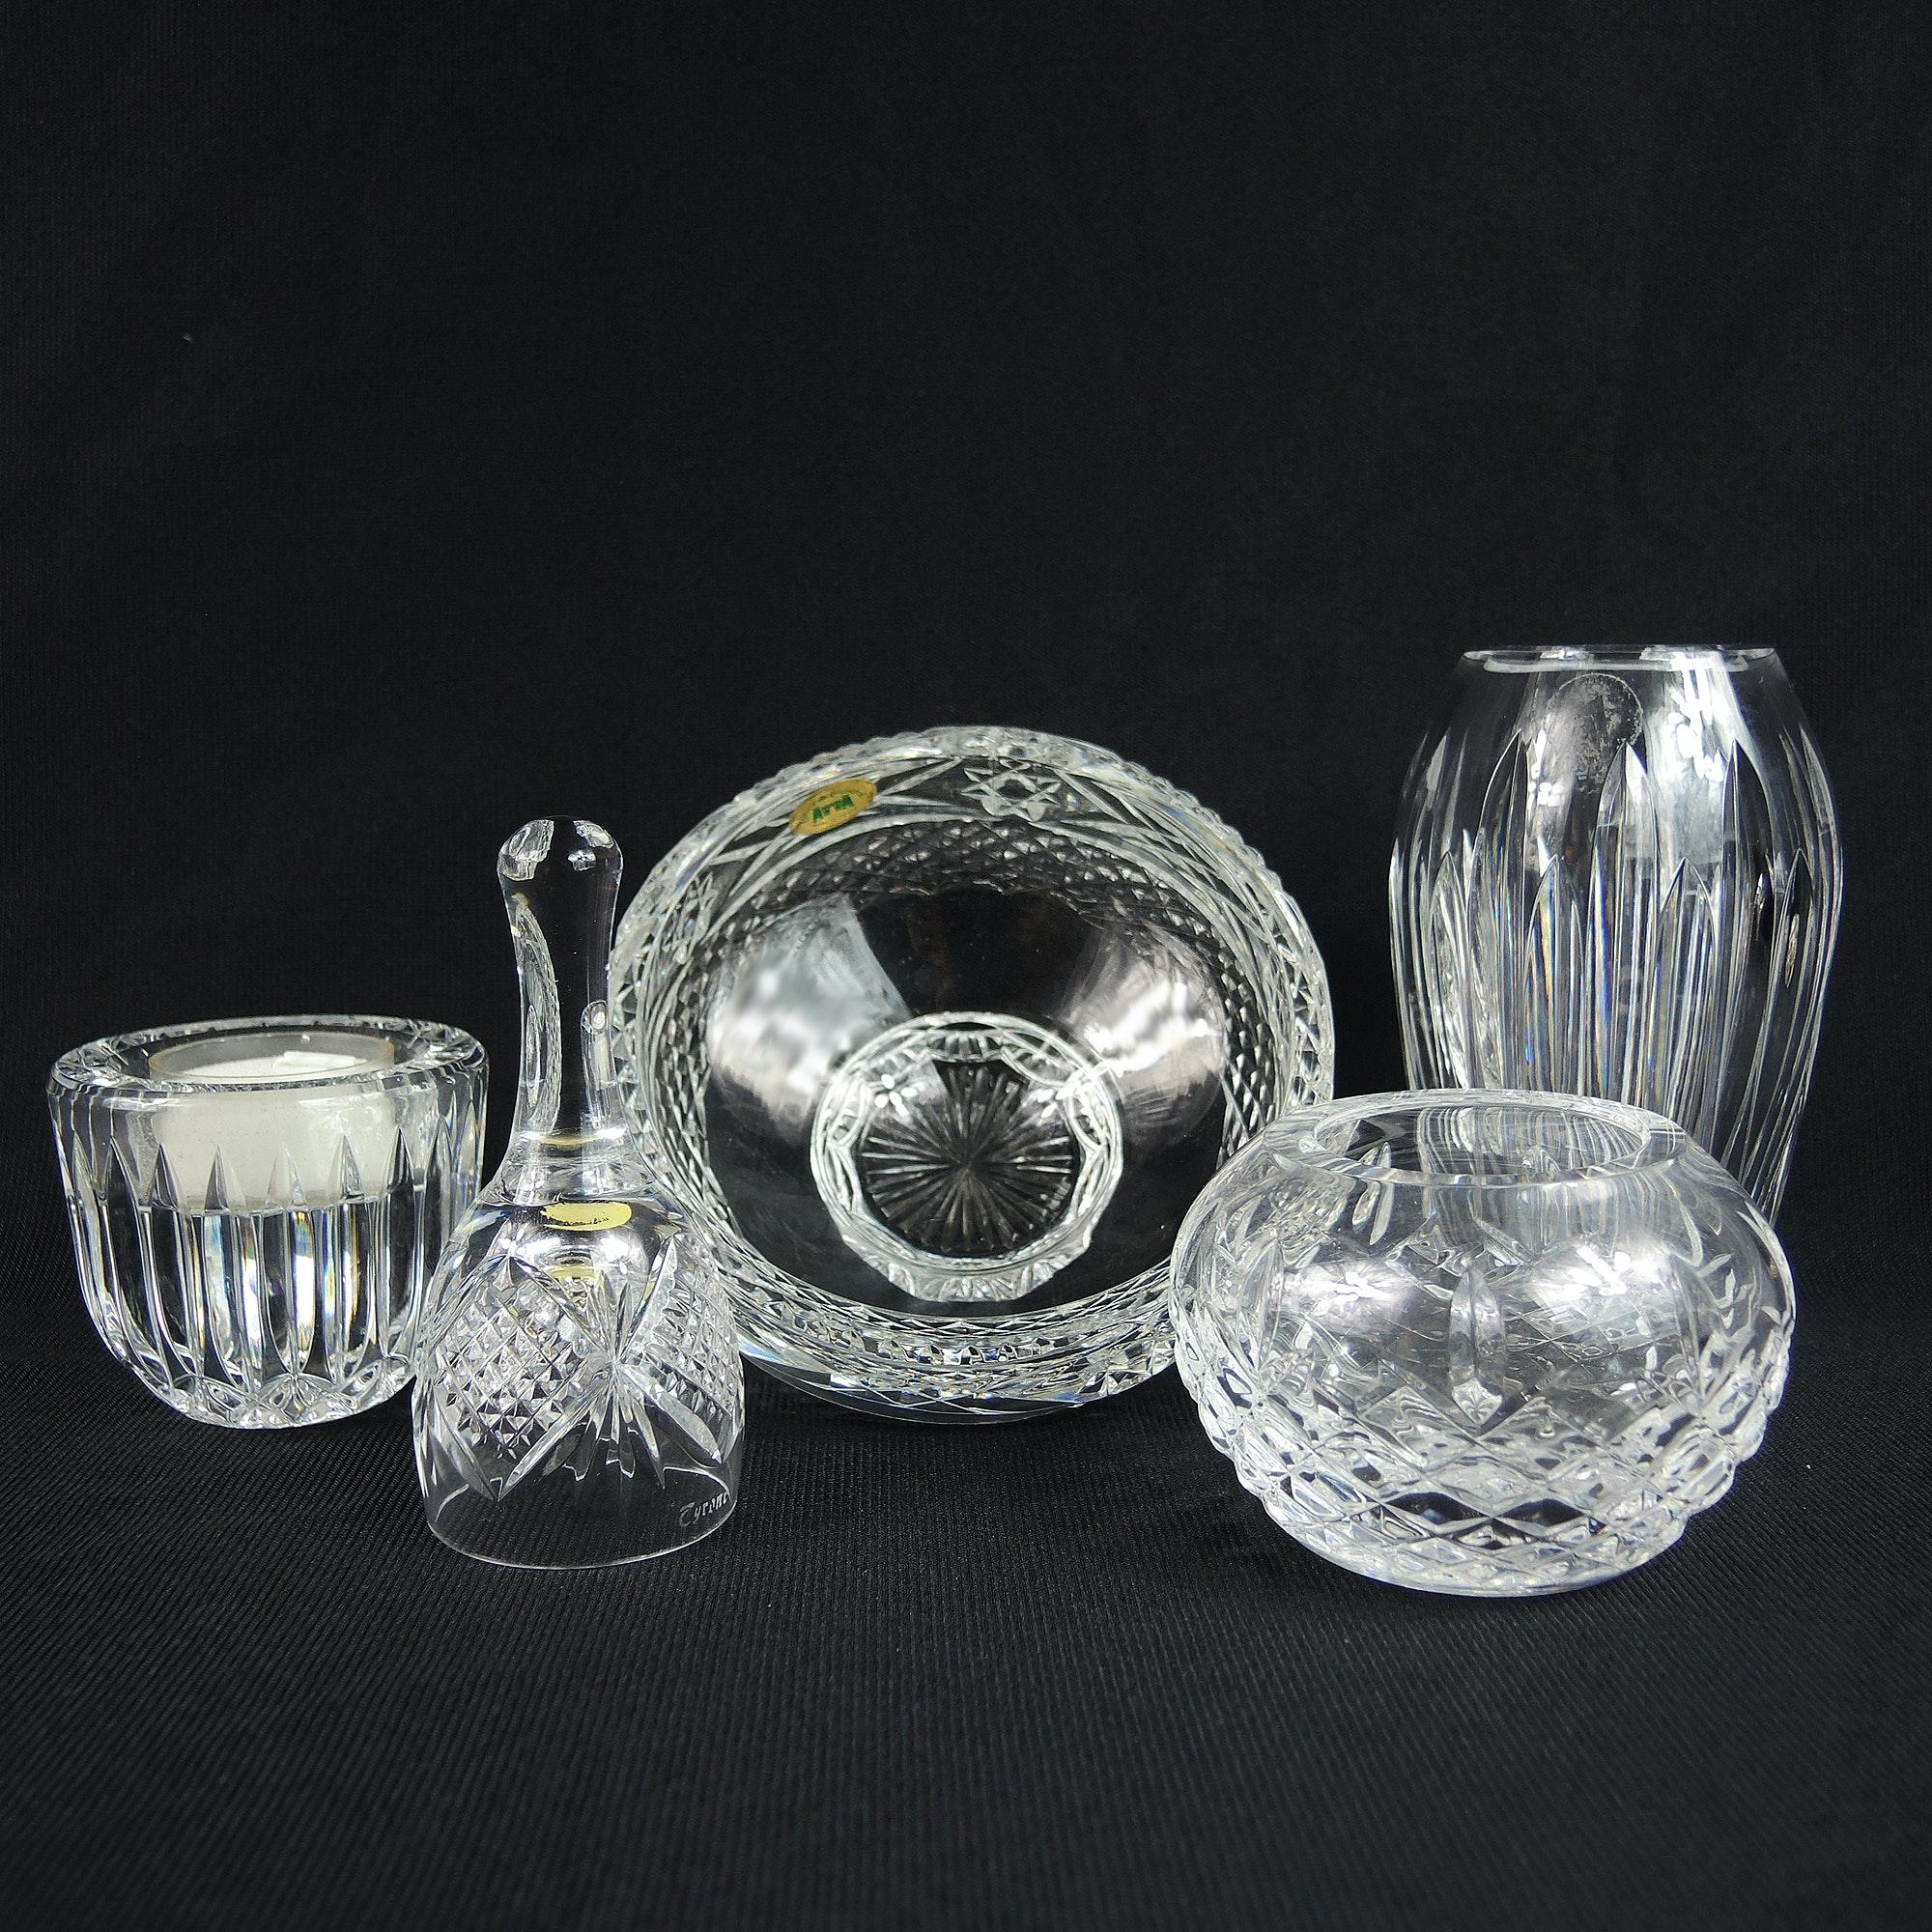 Waterford and Tyrone Cut Crystal Collection